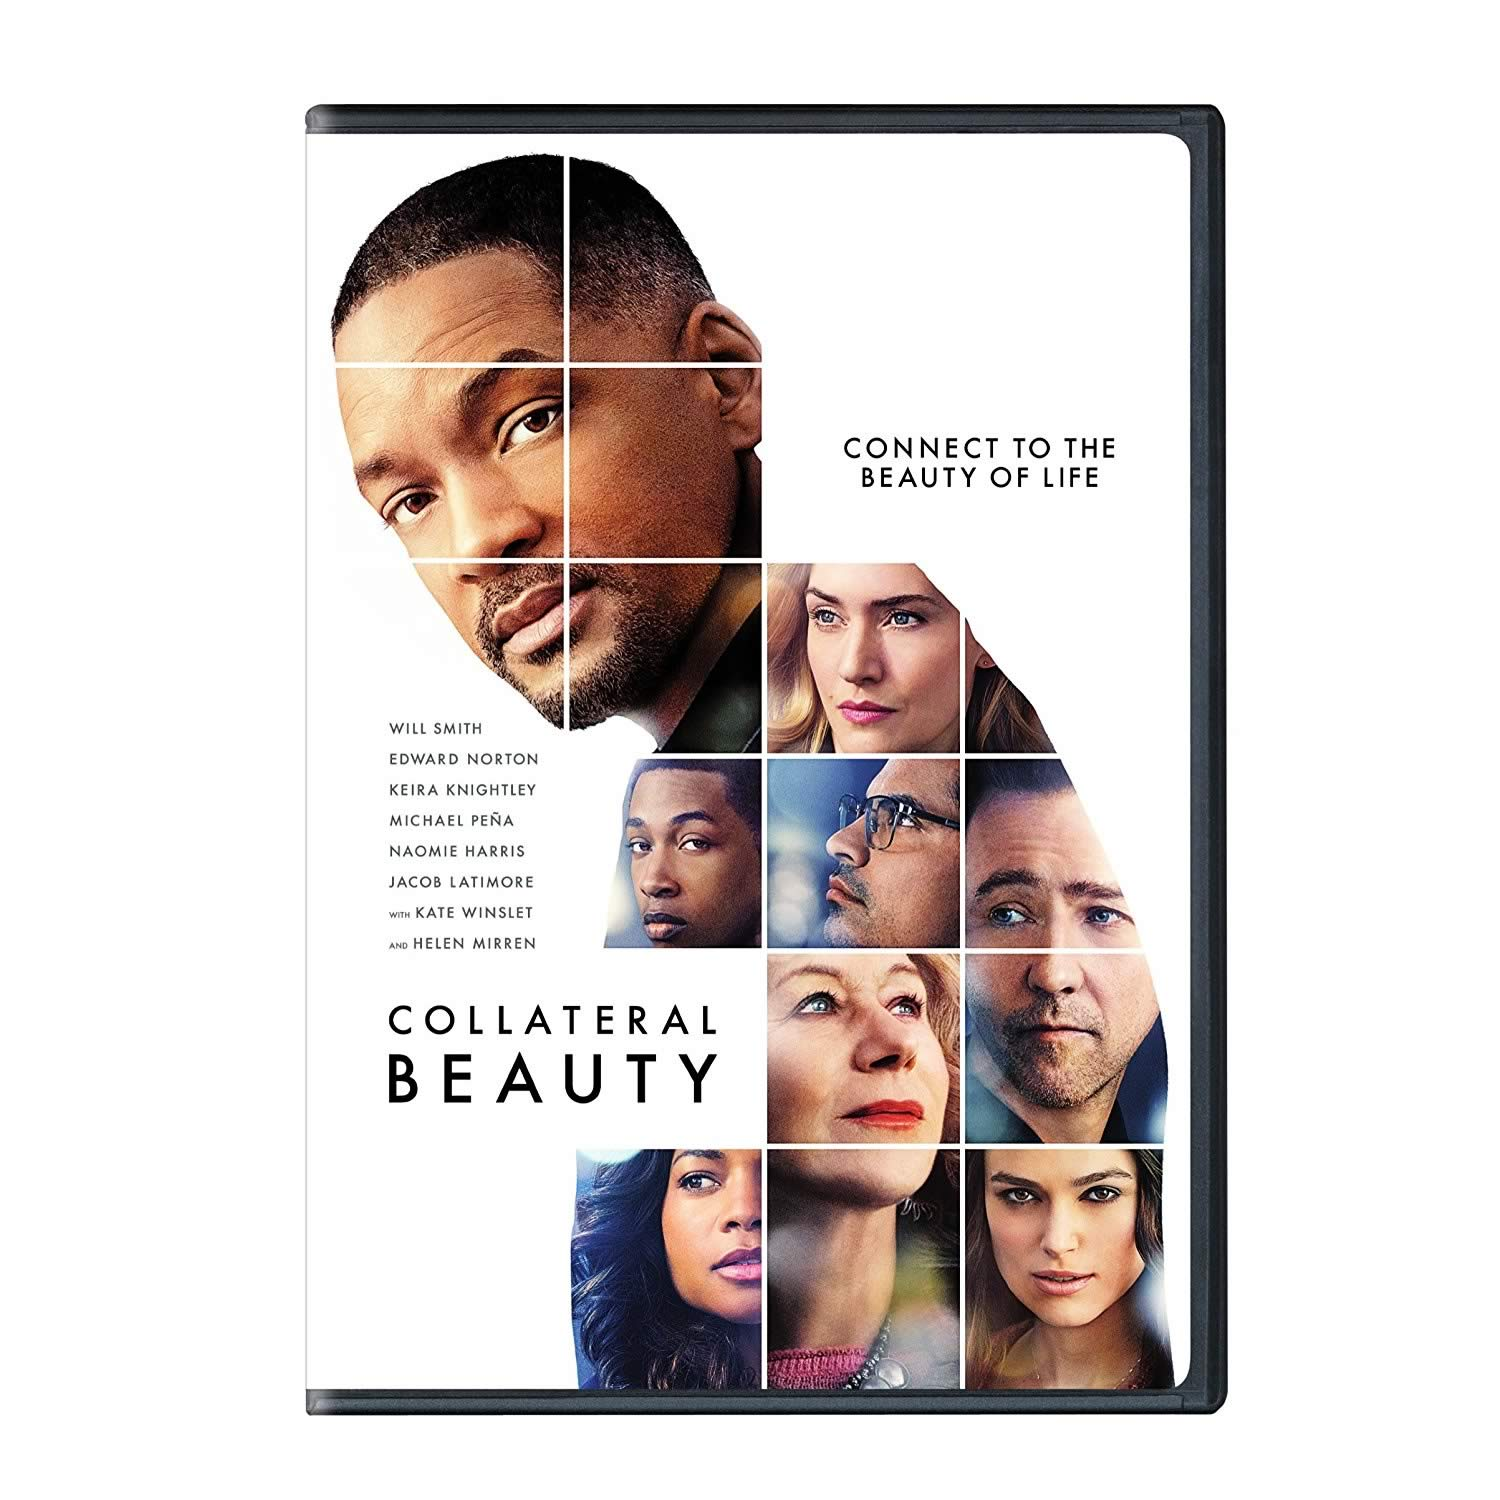 COLLATERAL BEAUTY - ΚΡΥΦΗ ΟΜΟΡΦΙΑ (DVD)